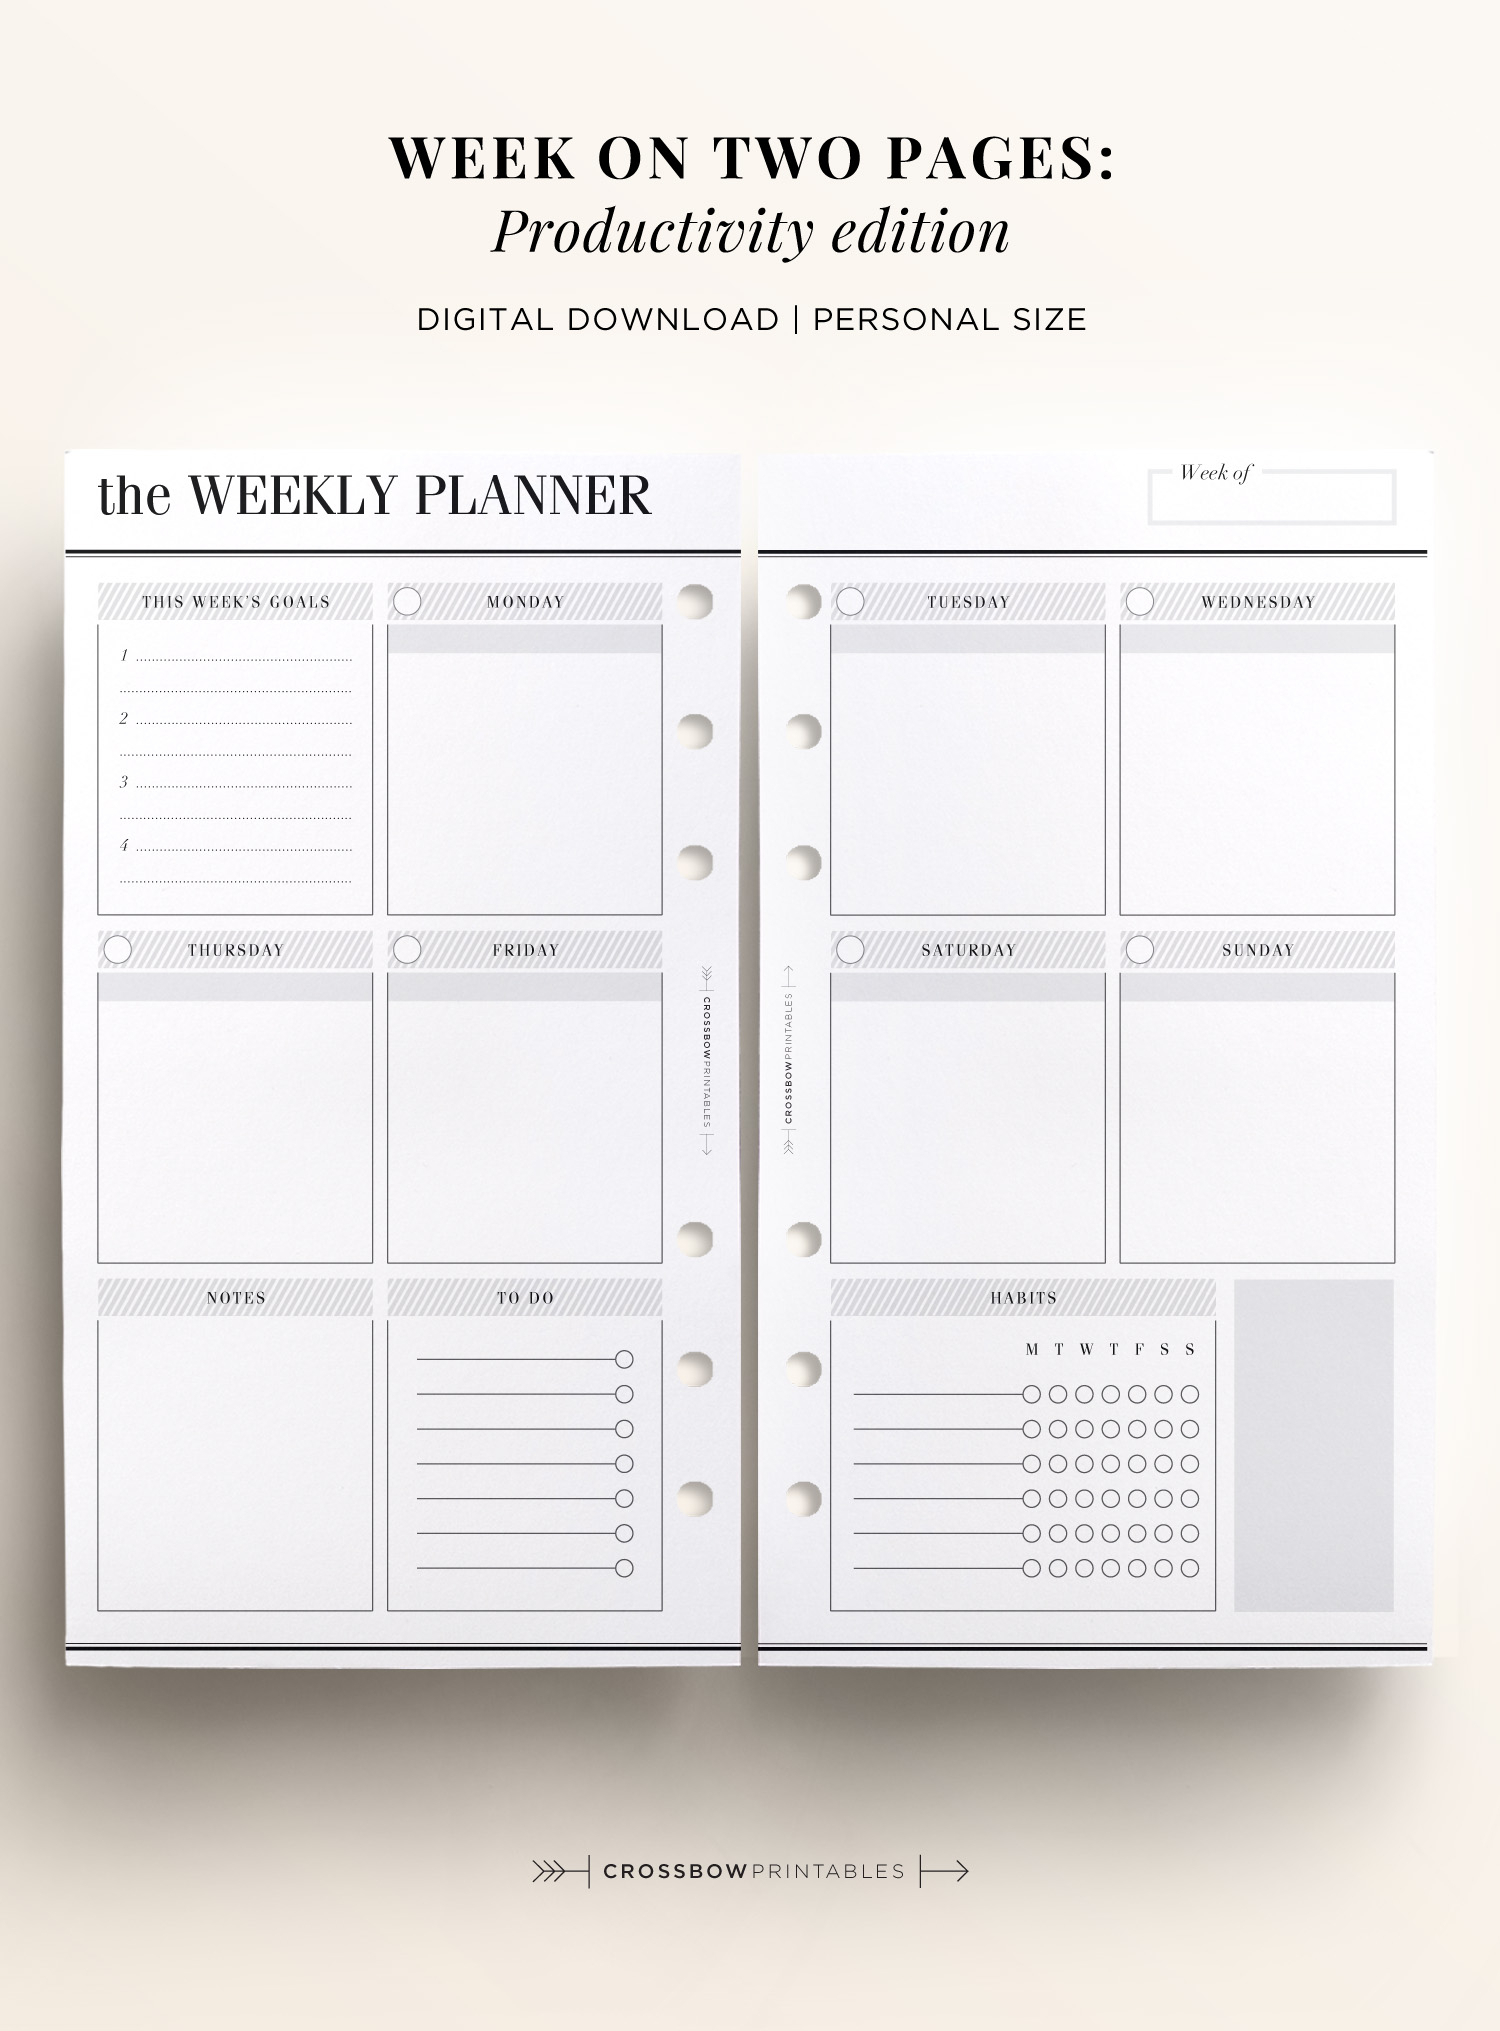 Week On Two Pages | Productivity Edition: Personal Printable Calendar intended for Printable Calendar By Week